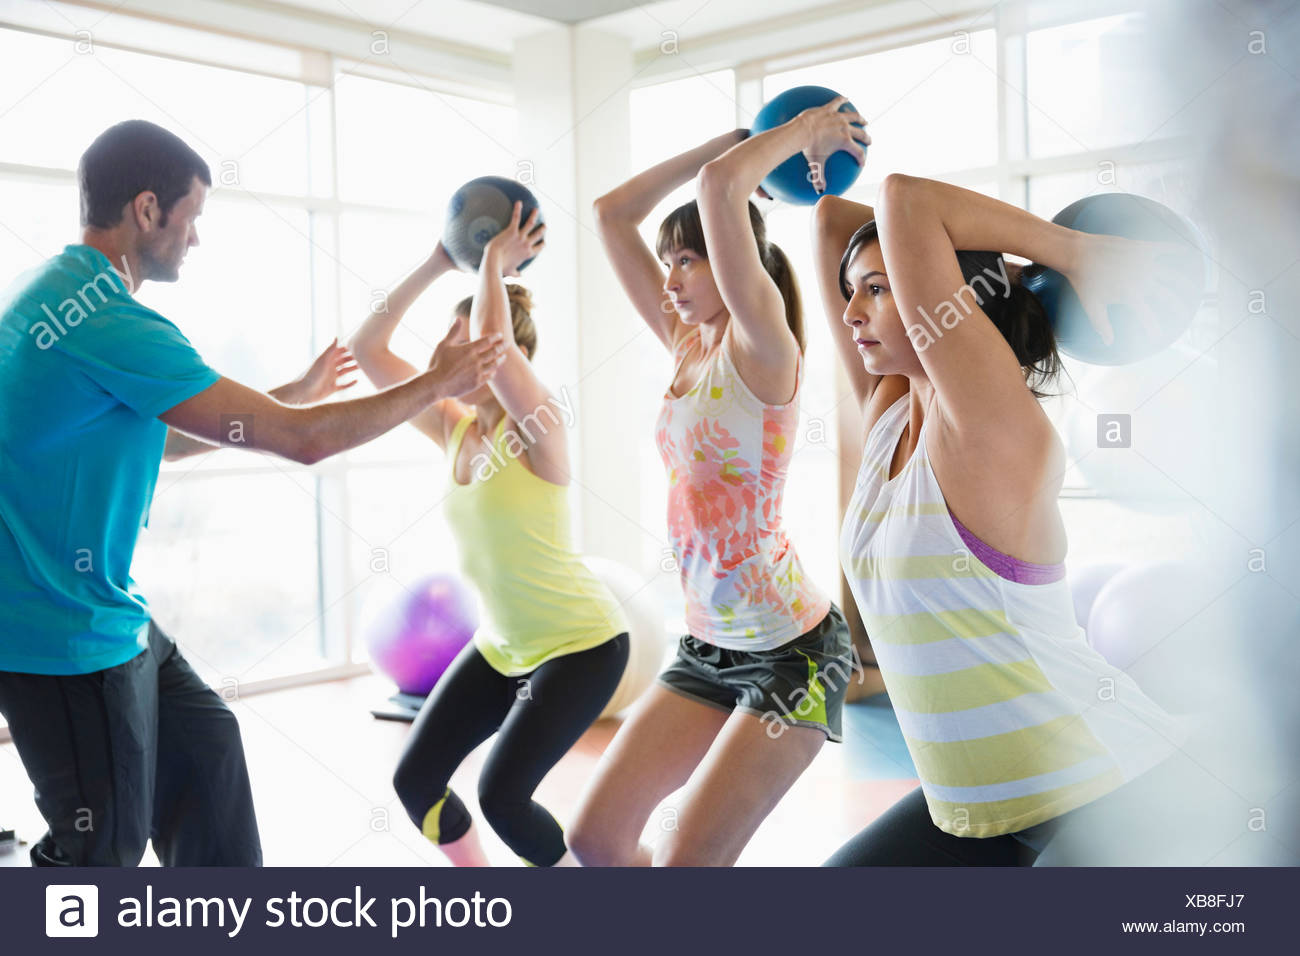 Women using medicine balls in fitness class - Stock Image